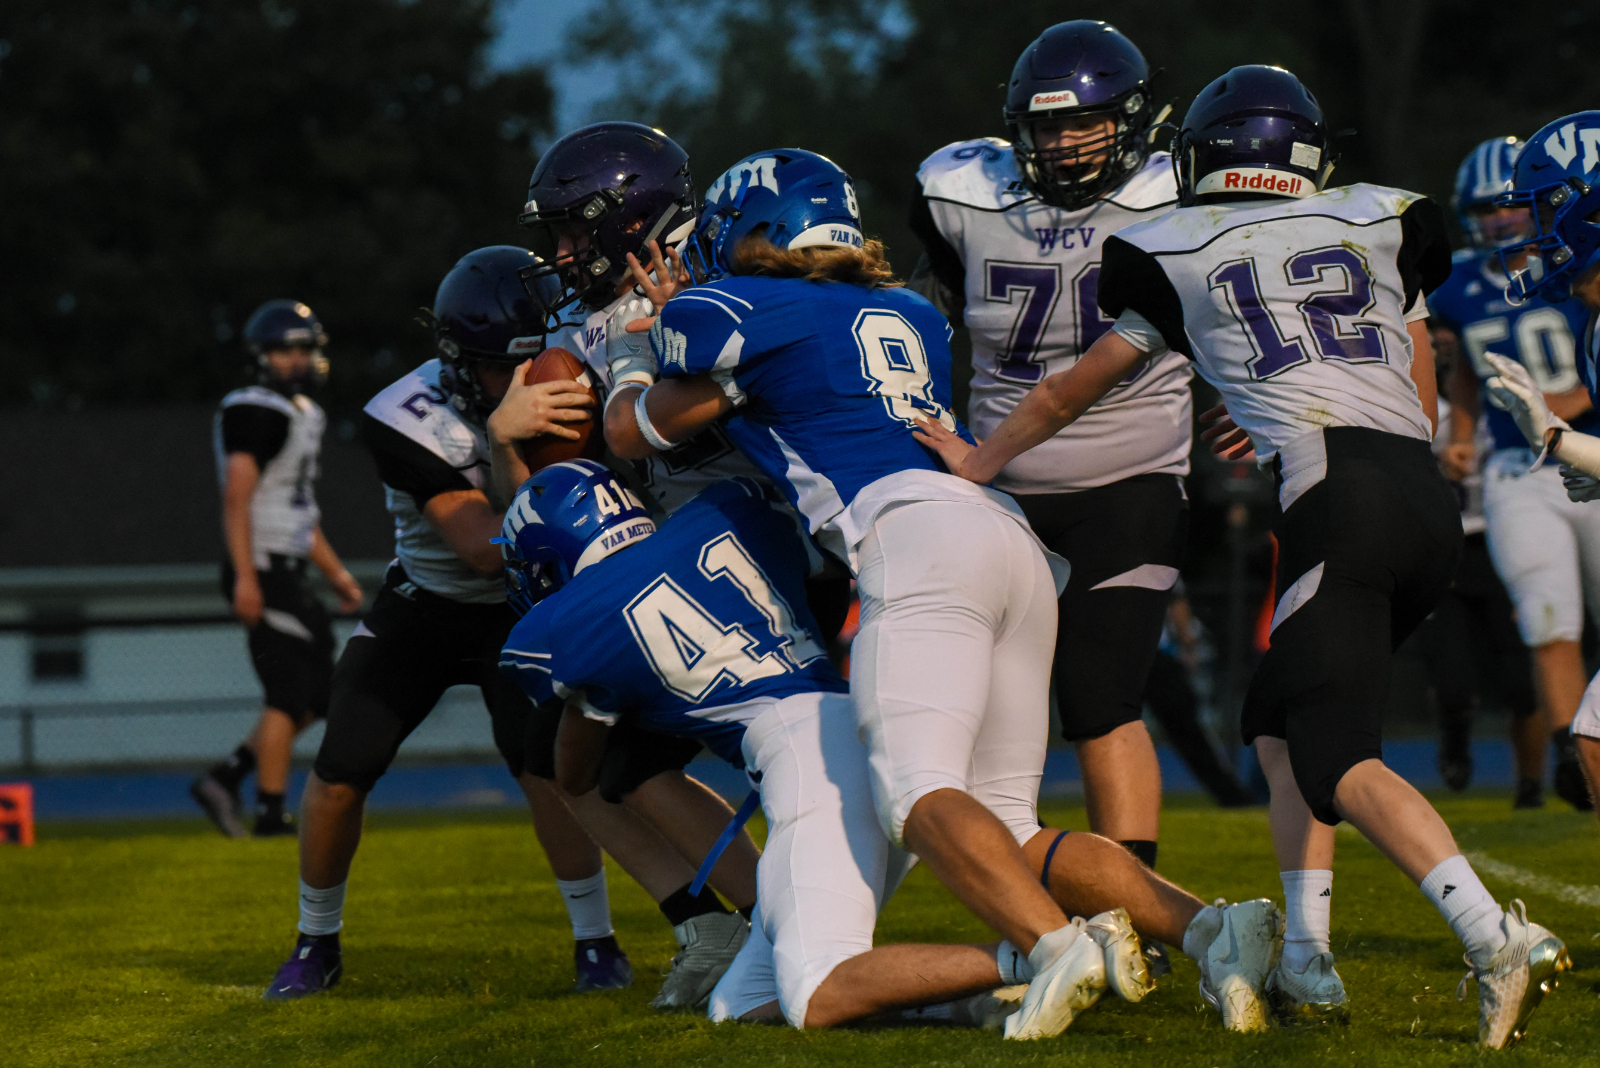 Bulldogs Post 48-6 Homecoming Victory Over WCV